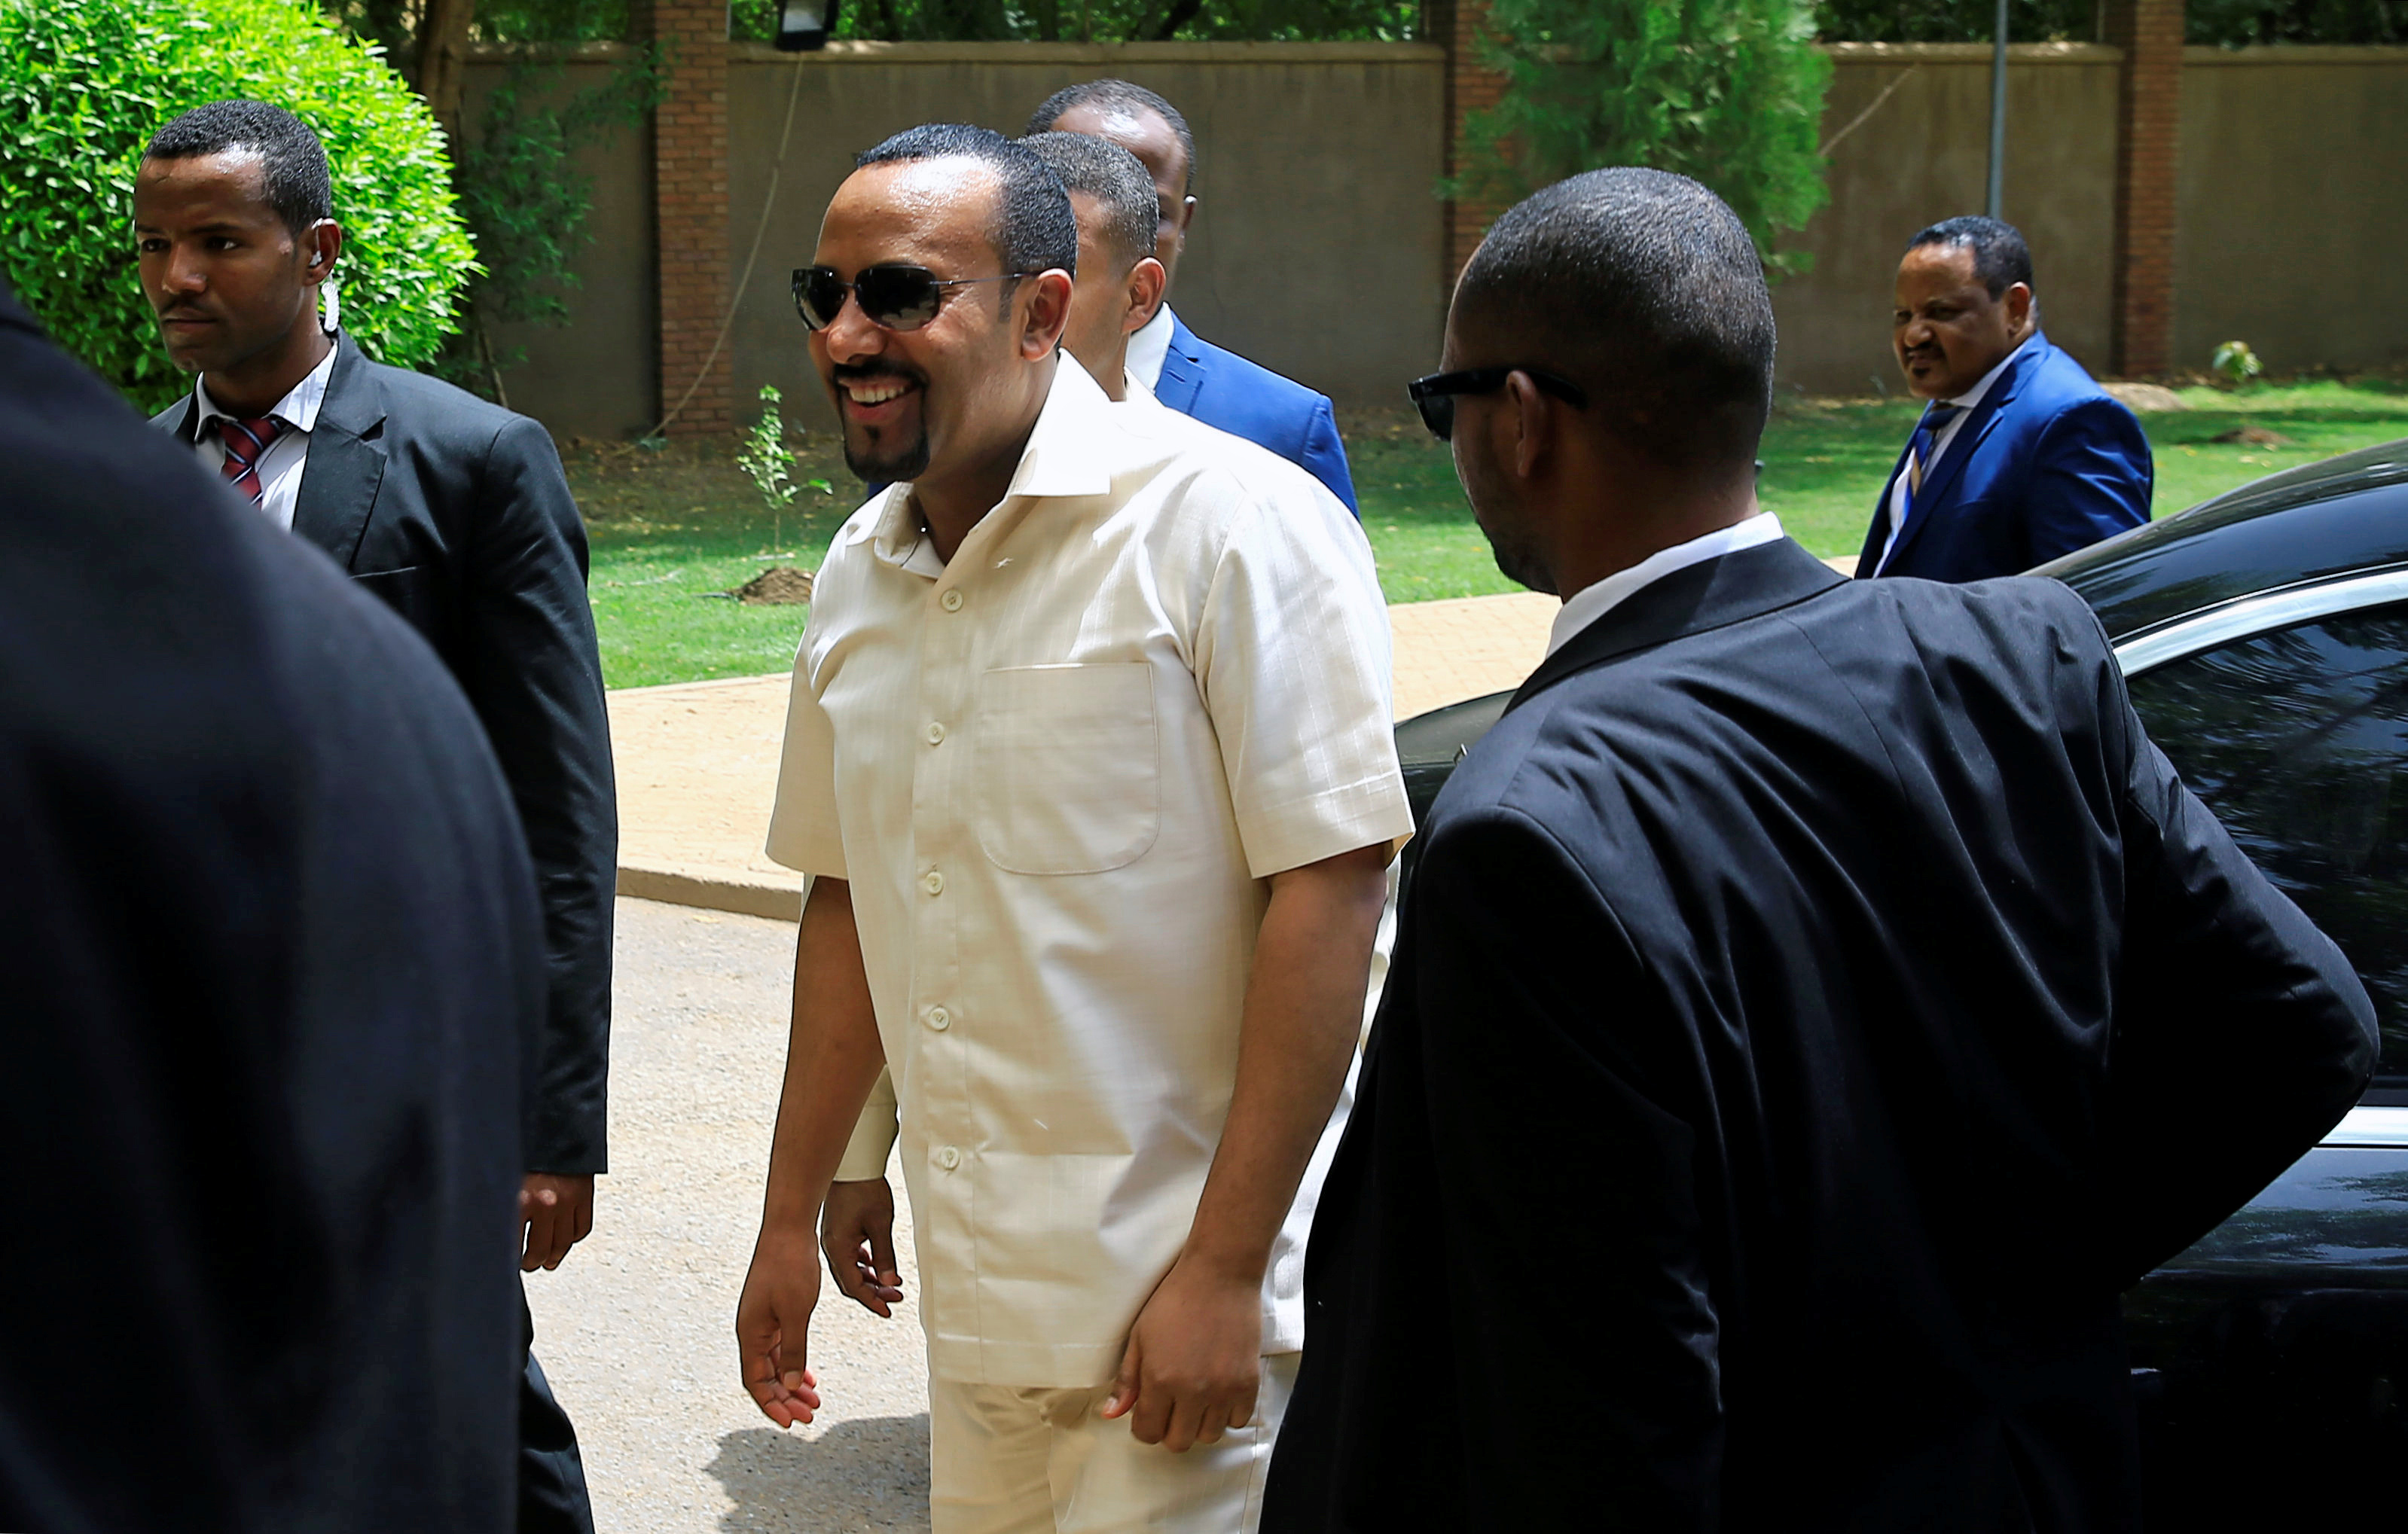 Ethiopian Prime Minister Abiy Ahmed arrives to meet members of Sudan's opposition alliance to mediate in the political crisis that has followed the overthrow of President Omar al-Bashir at the Ethiopian Embassy in Khartoum